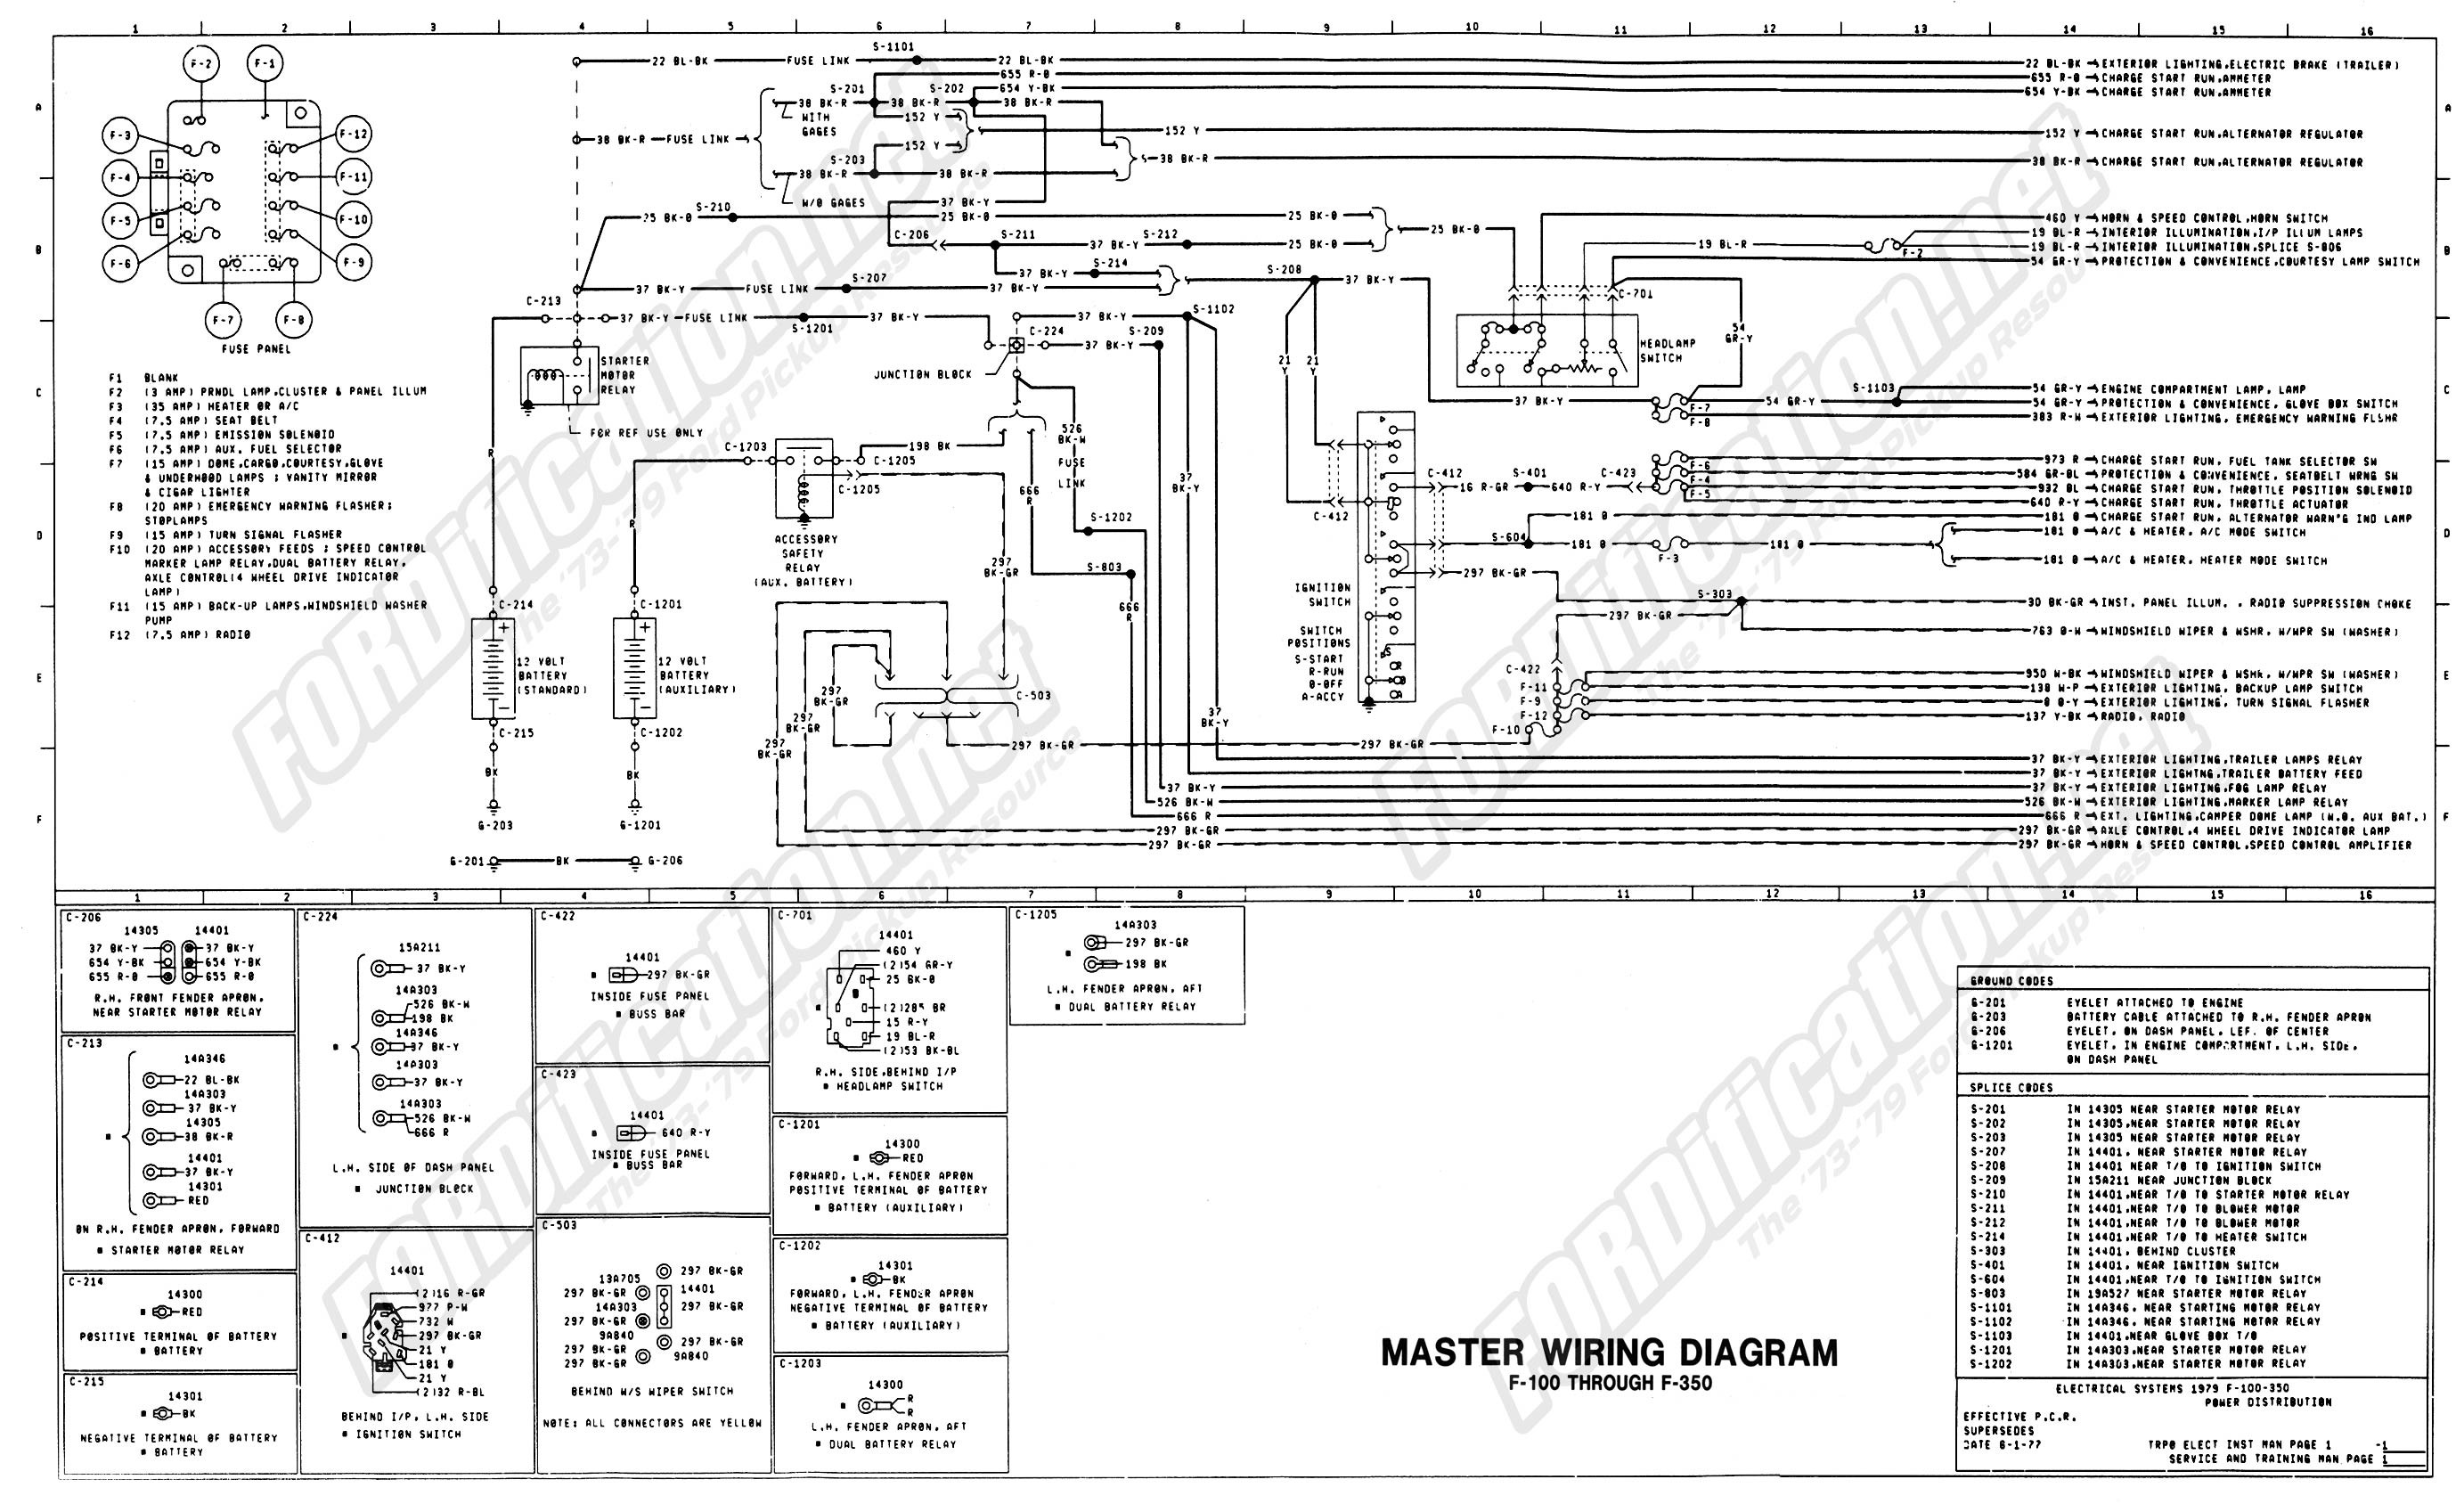 1971 Chevy Truck Wiring Diagram Inspirational | Wiring Diagram Image